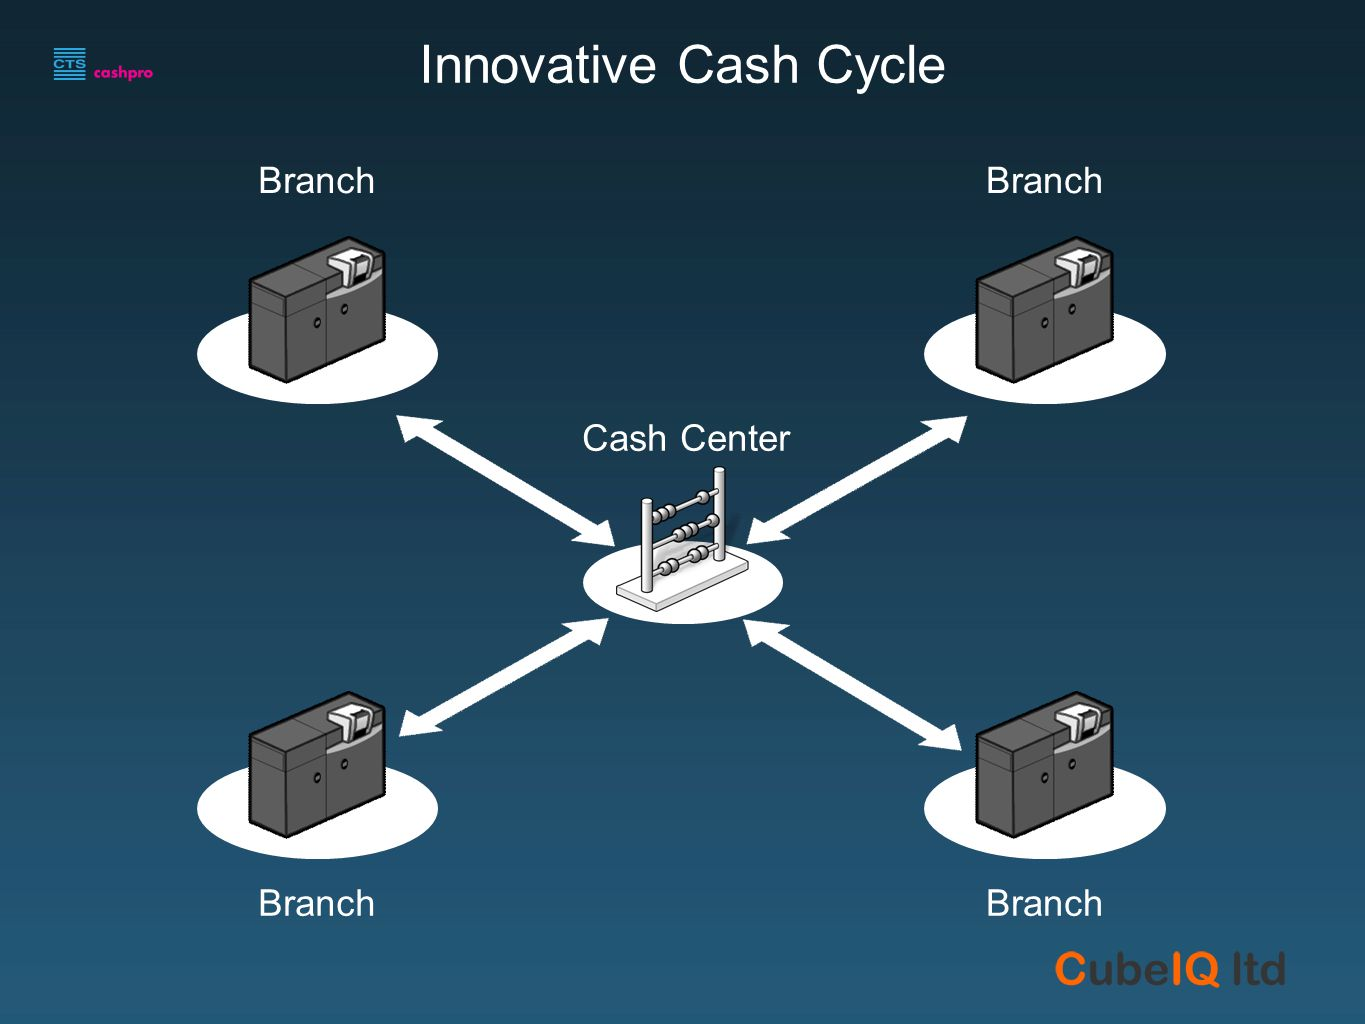 Branch FIT Cash Center Innovative Cash Cycle